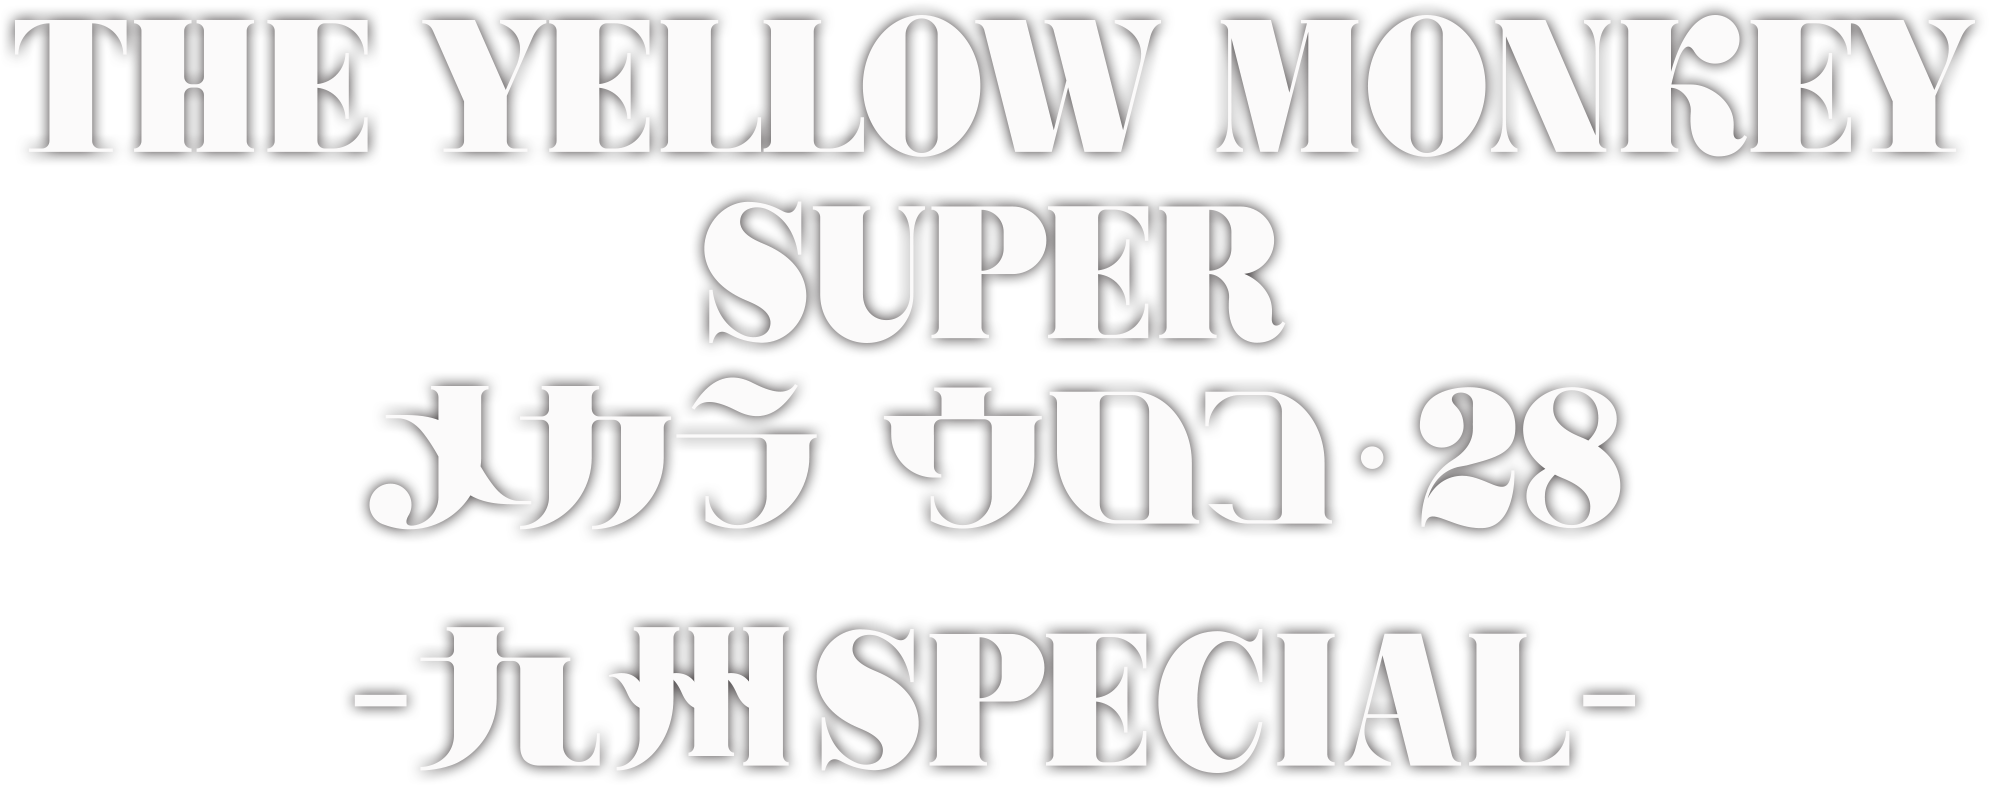 The Yellow Monkey Super メカラ ウロコ 28 九州special Special Site